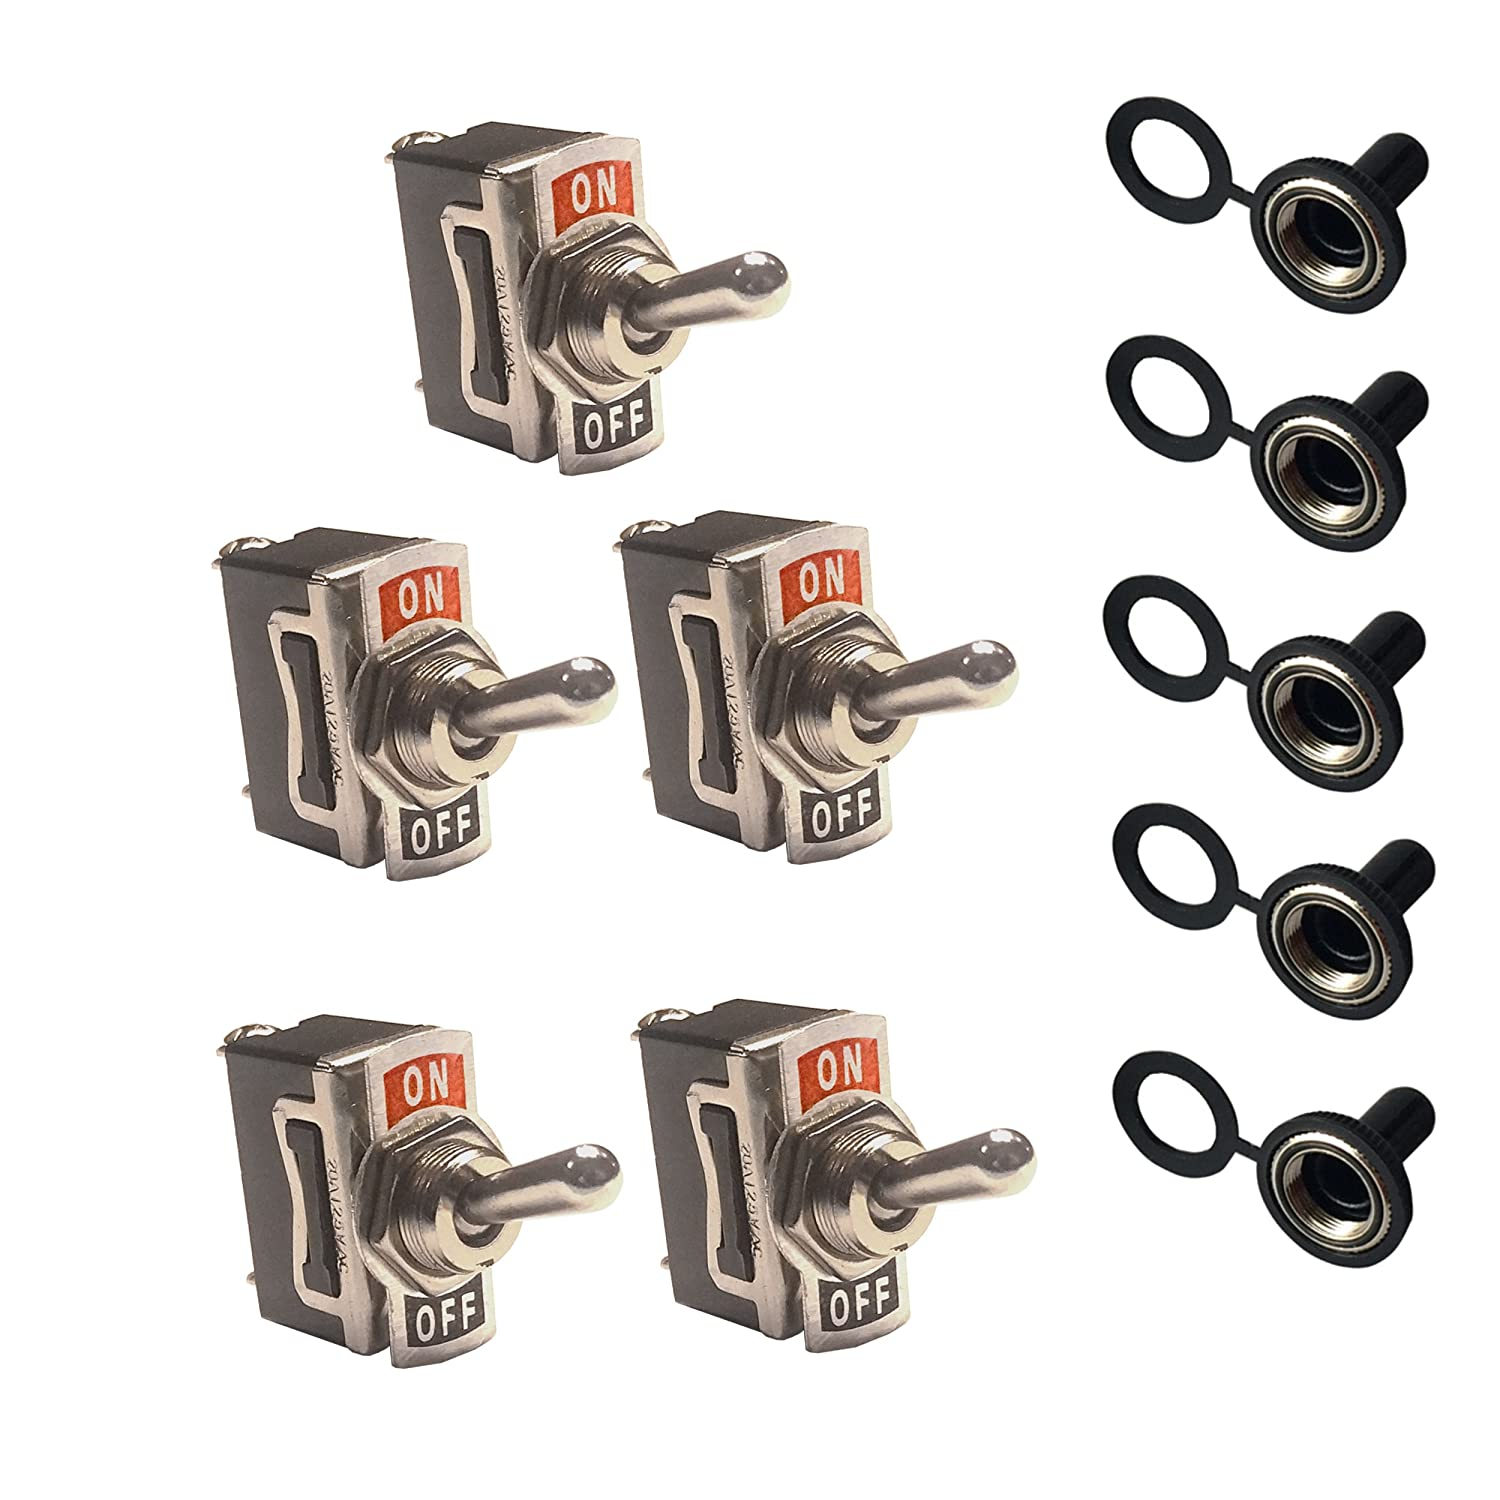 12V Toggle Switches with Waterproof Rubber Boot Covers (5 Pack) — SPST 2-Pin ON-OFF MGI